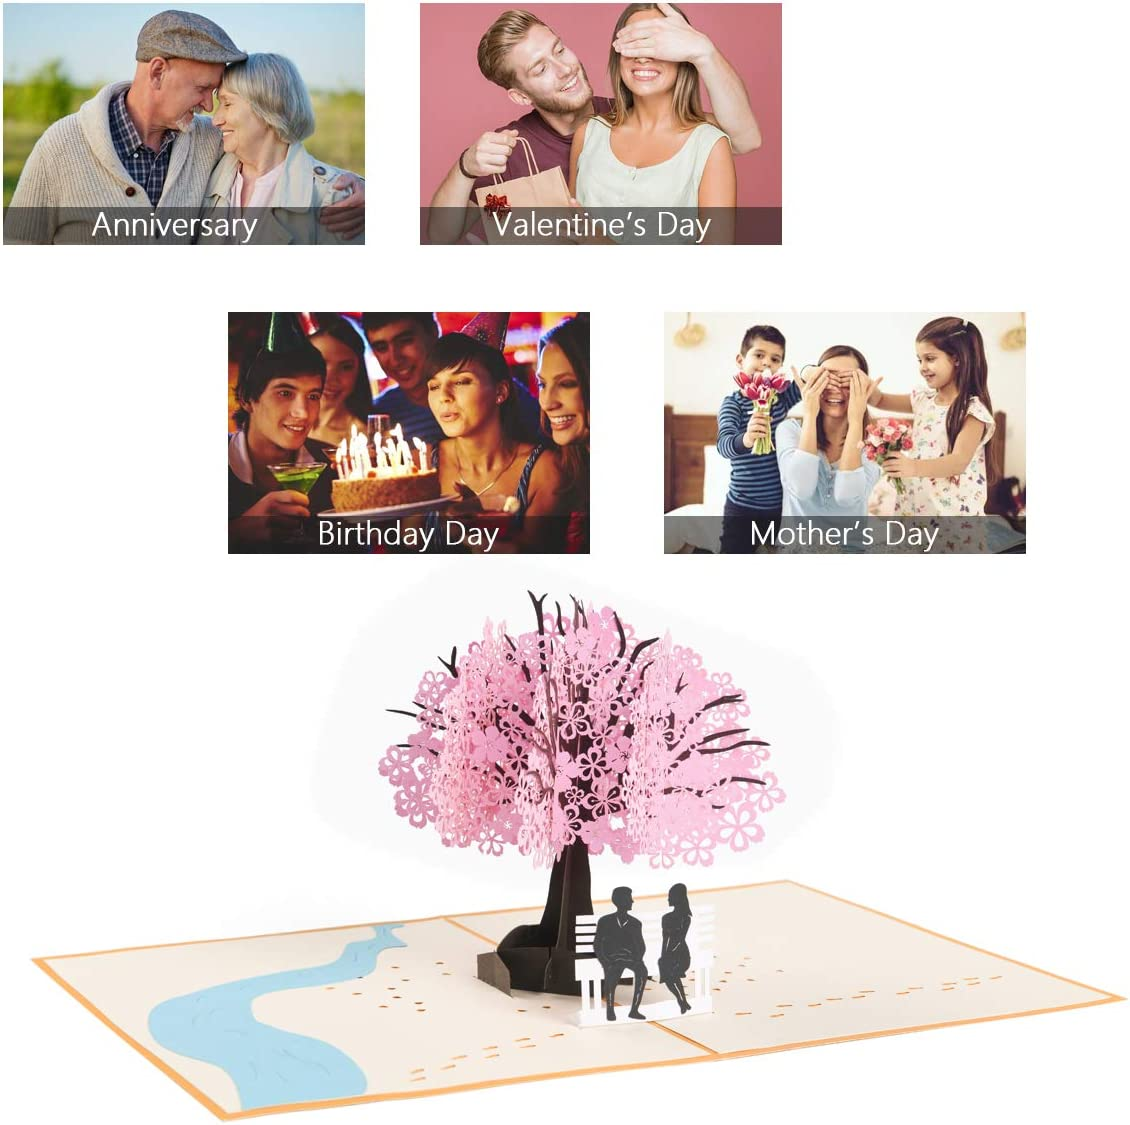 Pop Up Card with Romantic Lovers Under Cherry Tree Vicloon 3D Card Mothers Day Card Anniversary Card Valentines Day Card Wedding Card Greeting Card for Wife Husband Girlfriend Bride and Mother